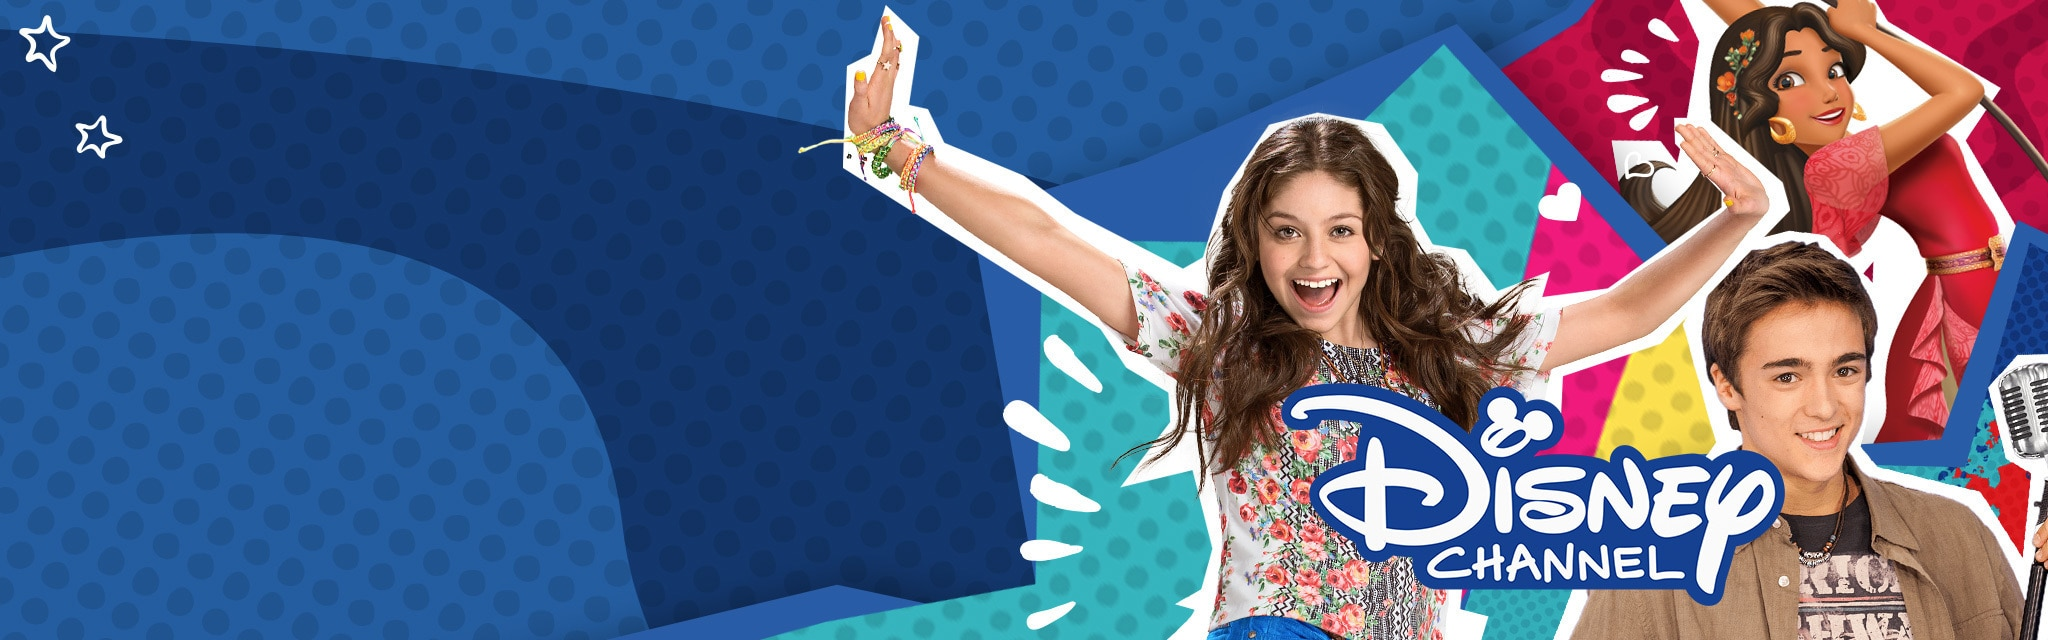 FW Hero - Disney Channel - Find Your Story - competition